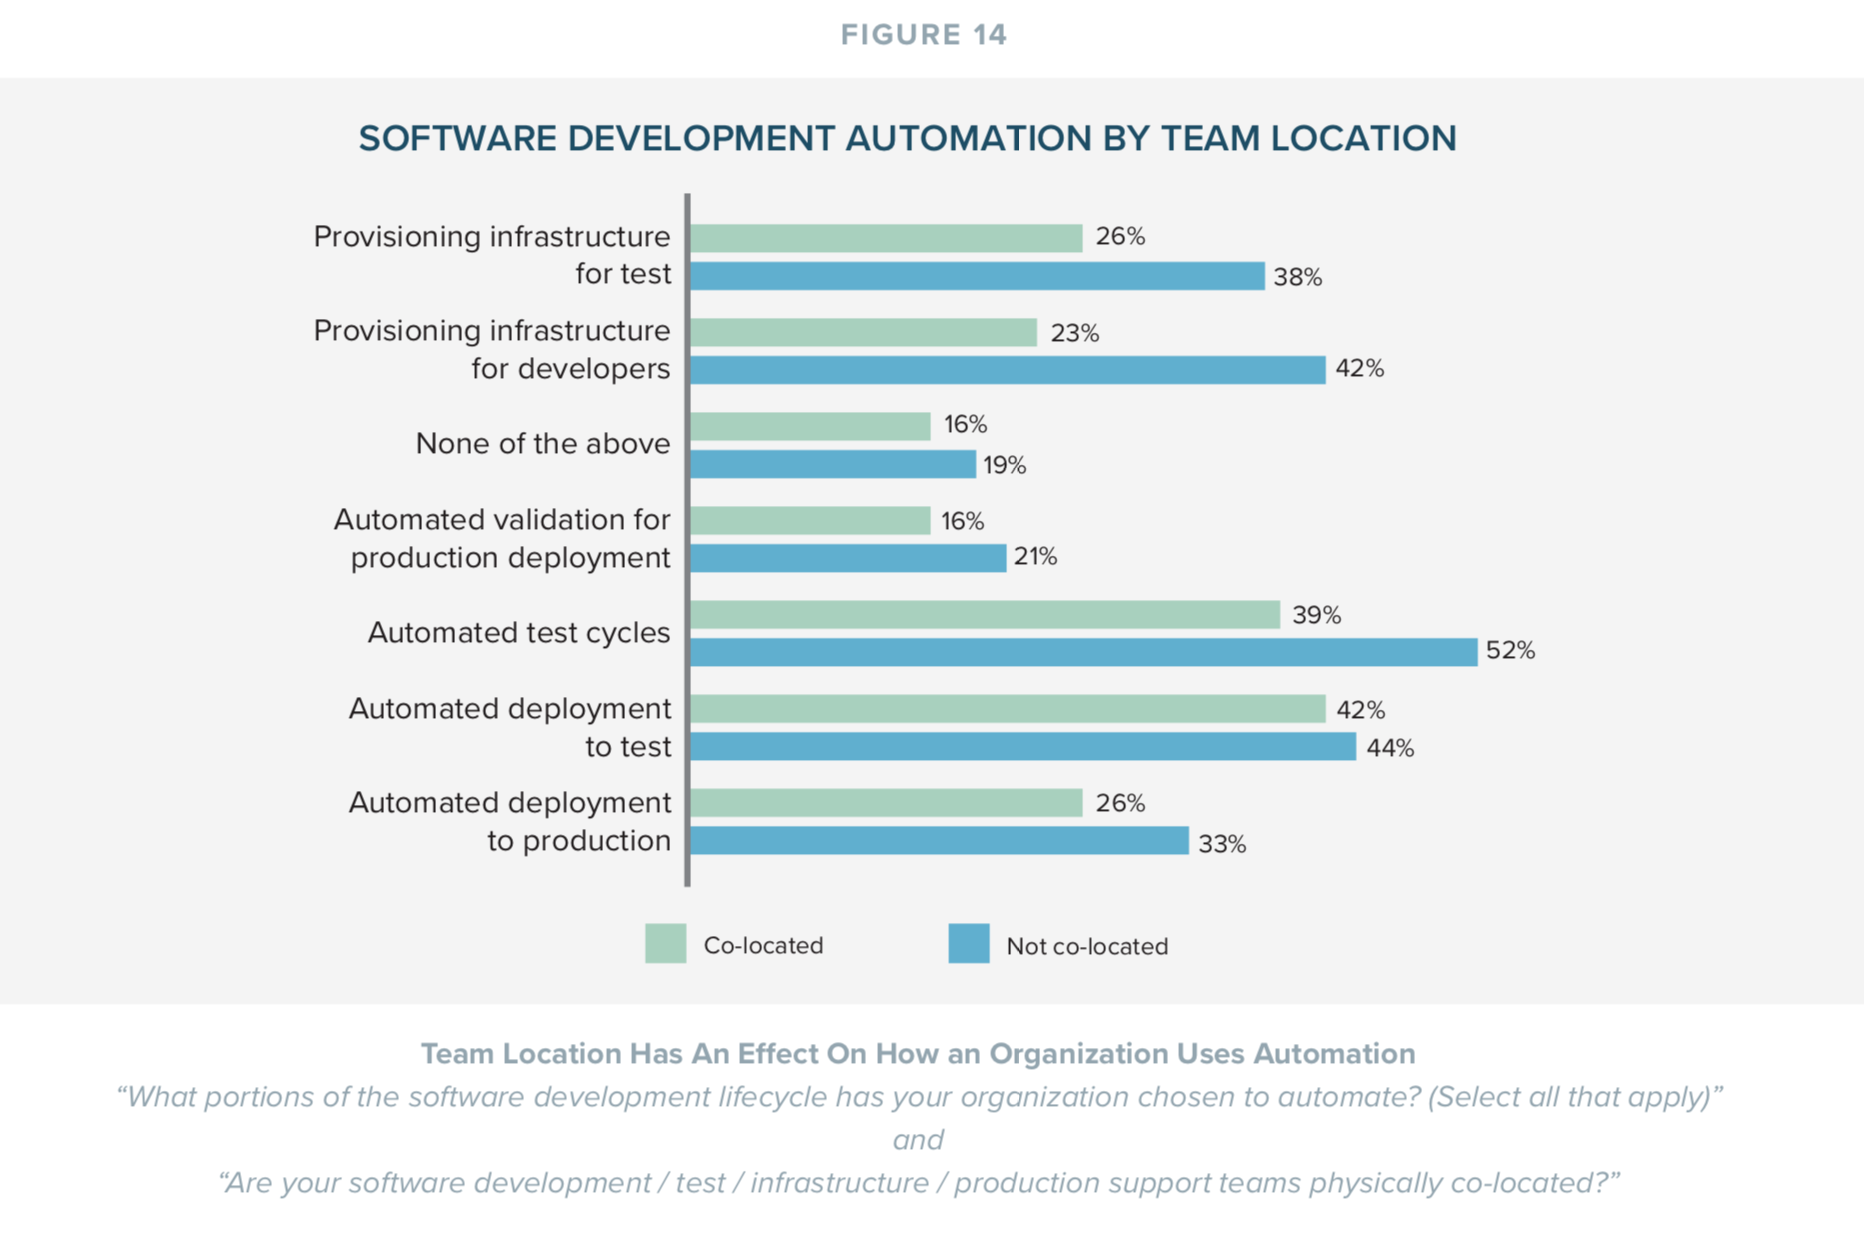 Software Development Automation by Team Location